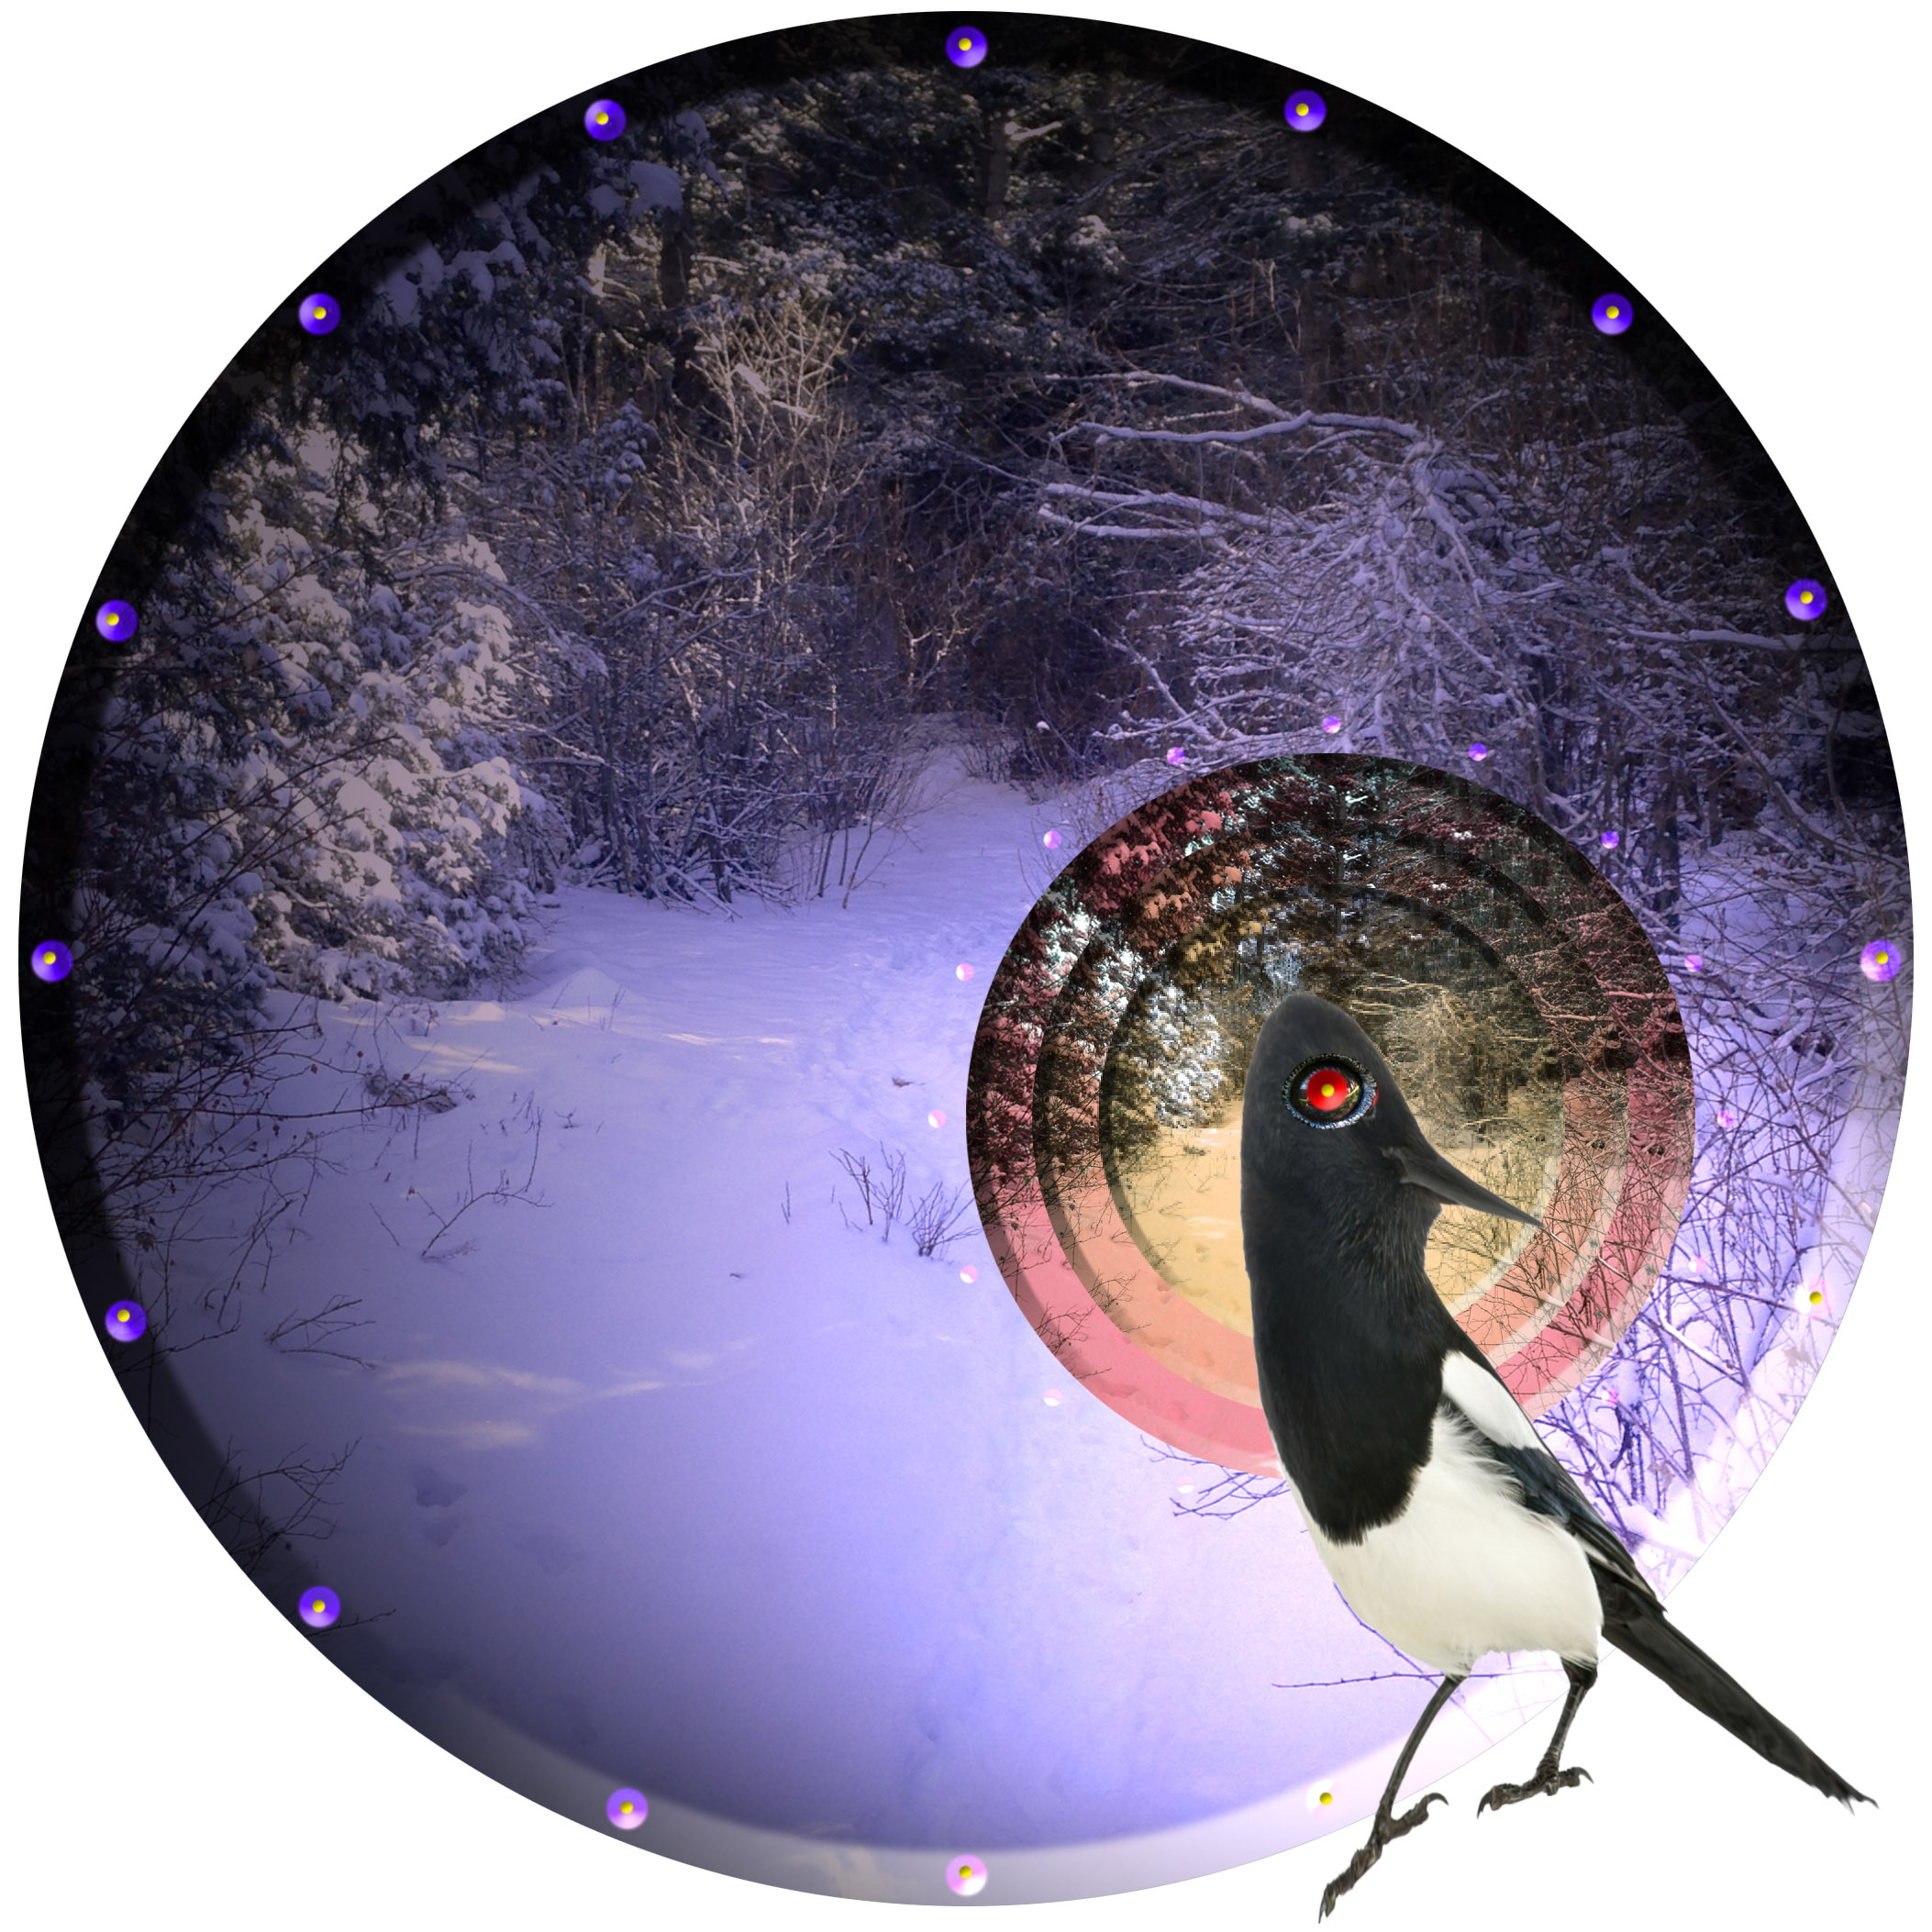 🦅The Magpie is the only non-mammal to recognize its own reflection as itself. 👁Today you will be granted the powers of the magpie, seeing the world as yourself, reflected back at you. 🌏👀